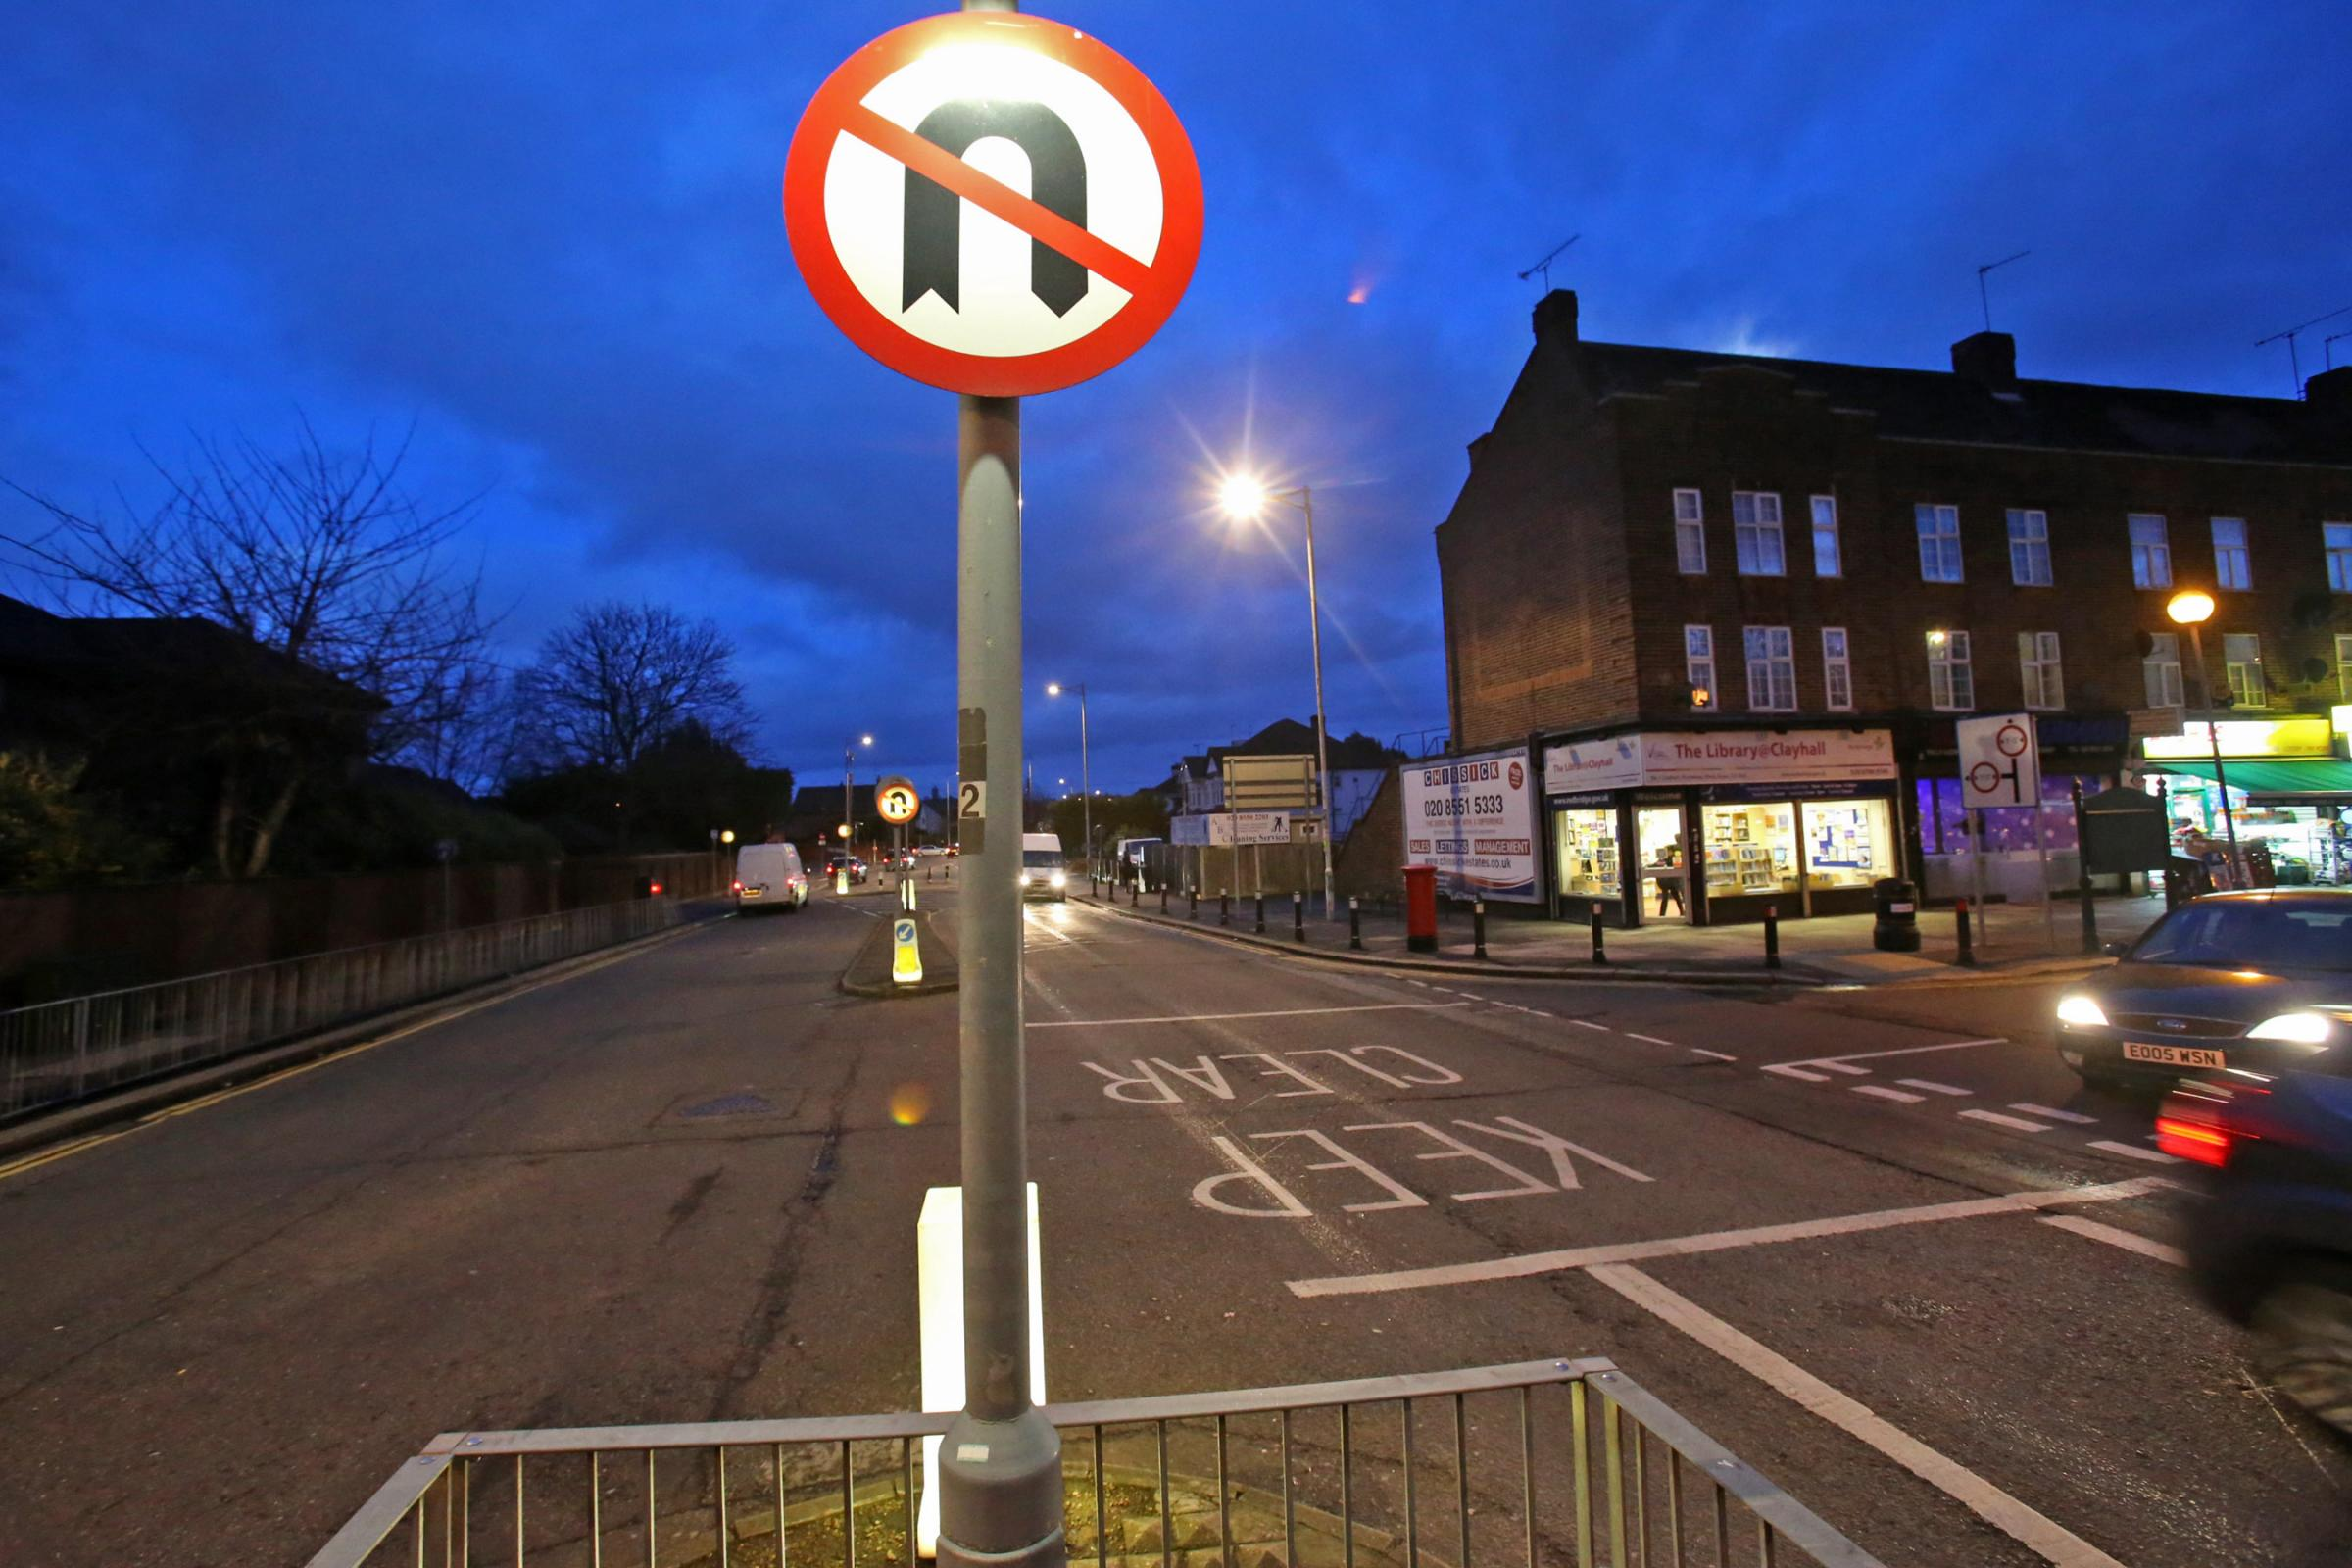 Row over safety of U-turns in Barkingside street